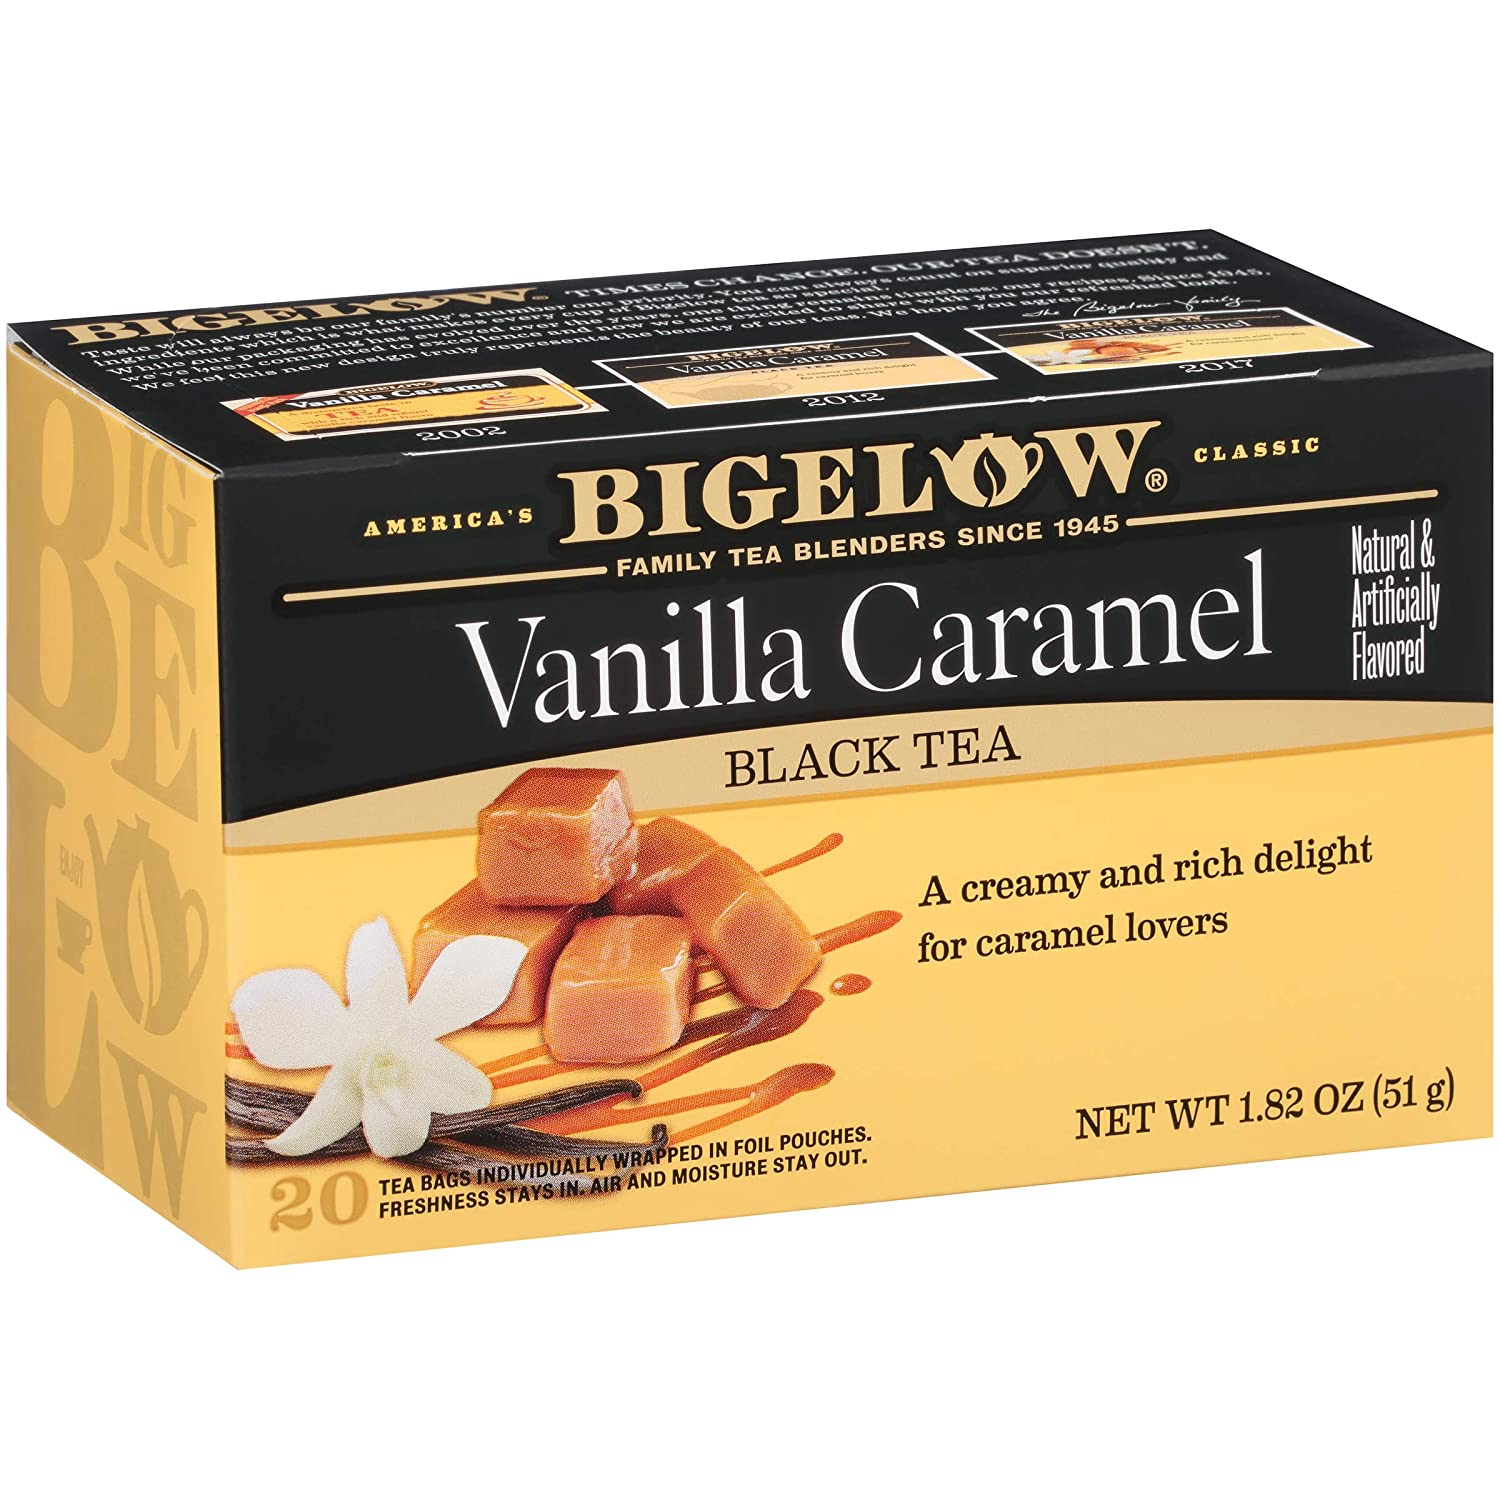 Bigelow Vanilla Caramel Black Tea Bags, 20 Count Box (Pack of 6) Caffeinated Black Tea, 120 Tea Bags Total